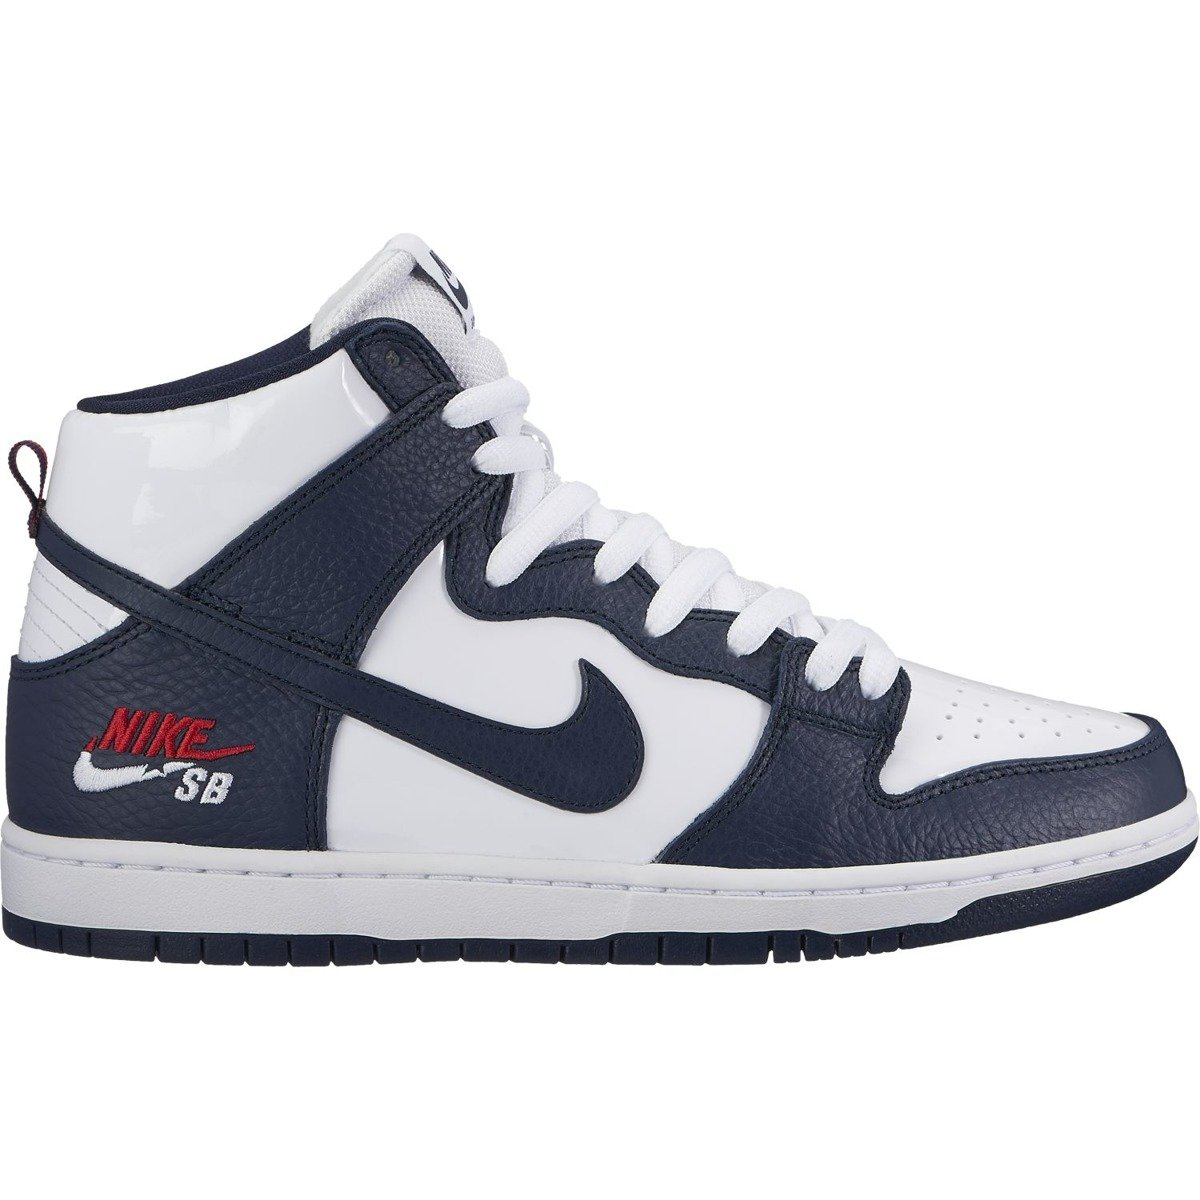 promo code a1c7e 15b3f shoes nike sb zoom dunk high obsidianobsidian-white-university red Click  to zoom ...